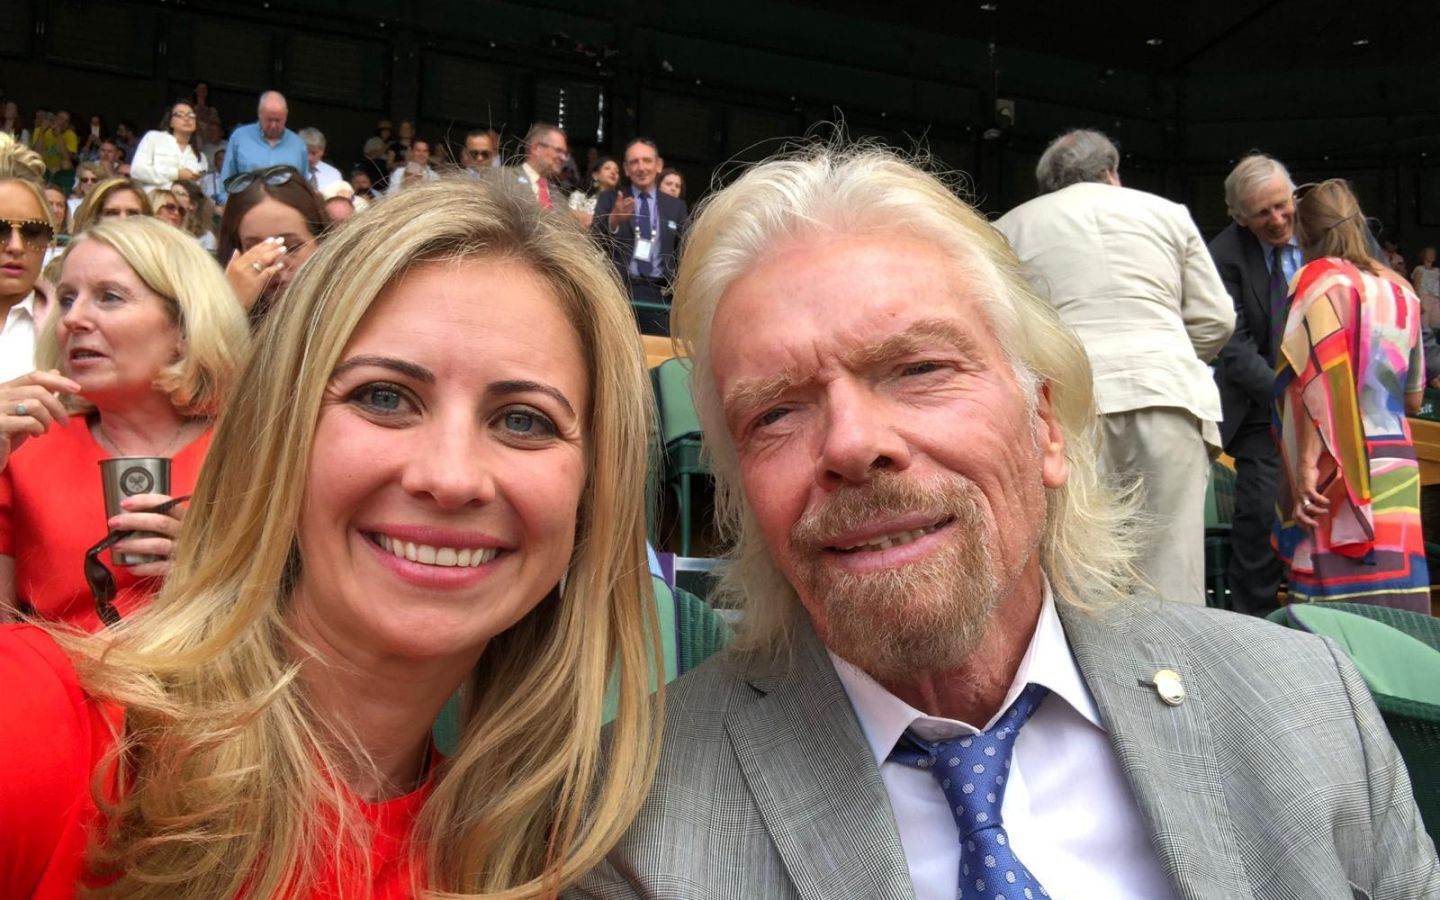 Holly Branson and Richard Branson at Wimbledon 2019